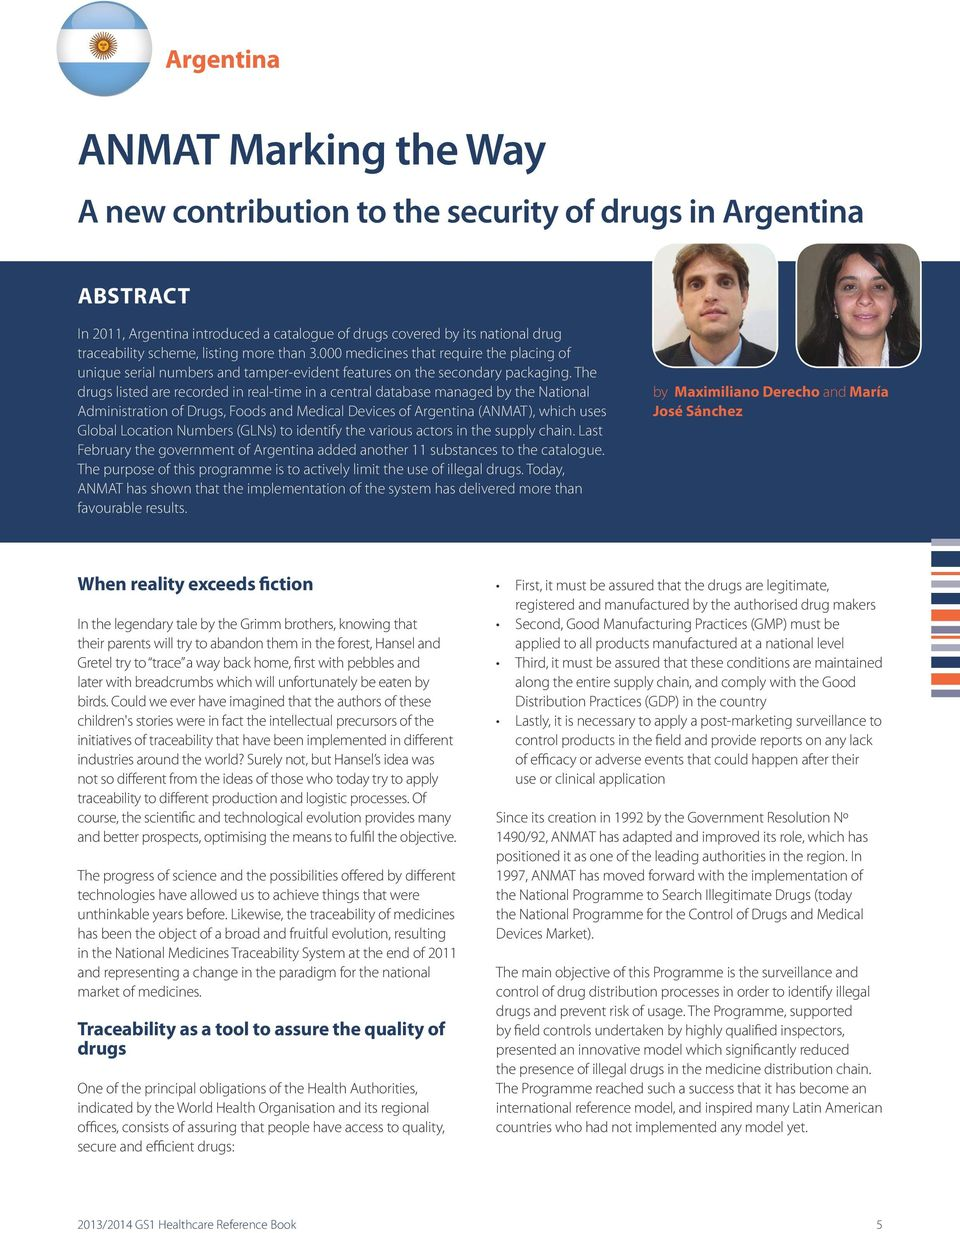 The drugs listed are recorded in real-time in a central database managed by the National Administration of Drugs, Foods and Medical Devices of Argentina (ANMAT), which uses Global Location Numbers